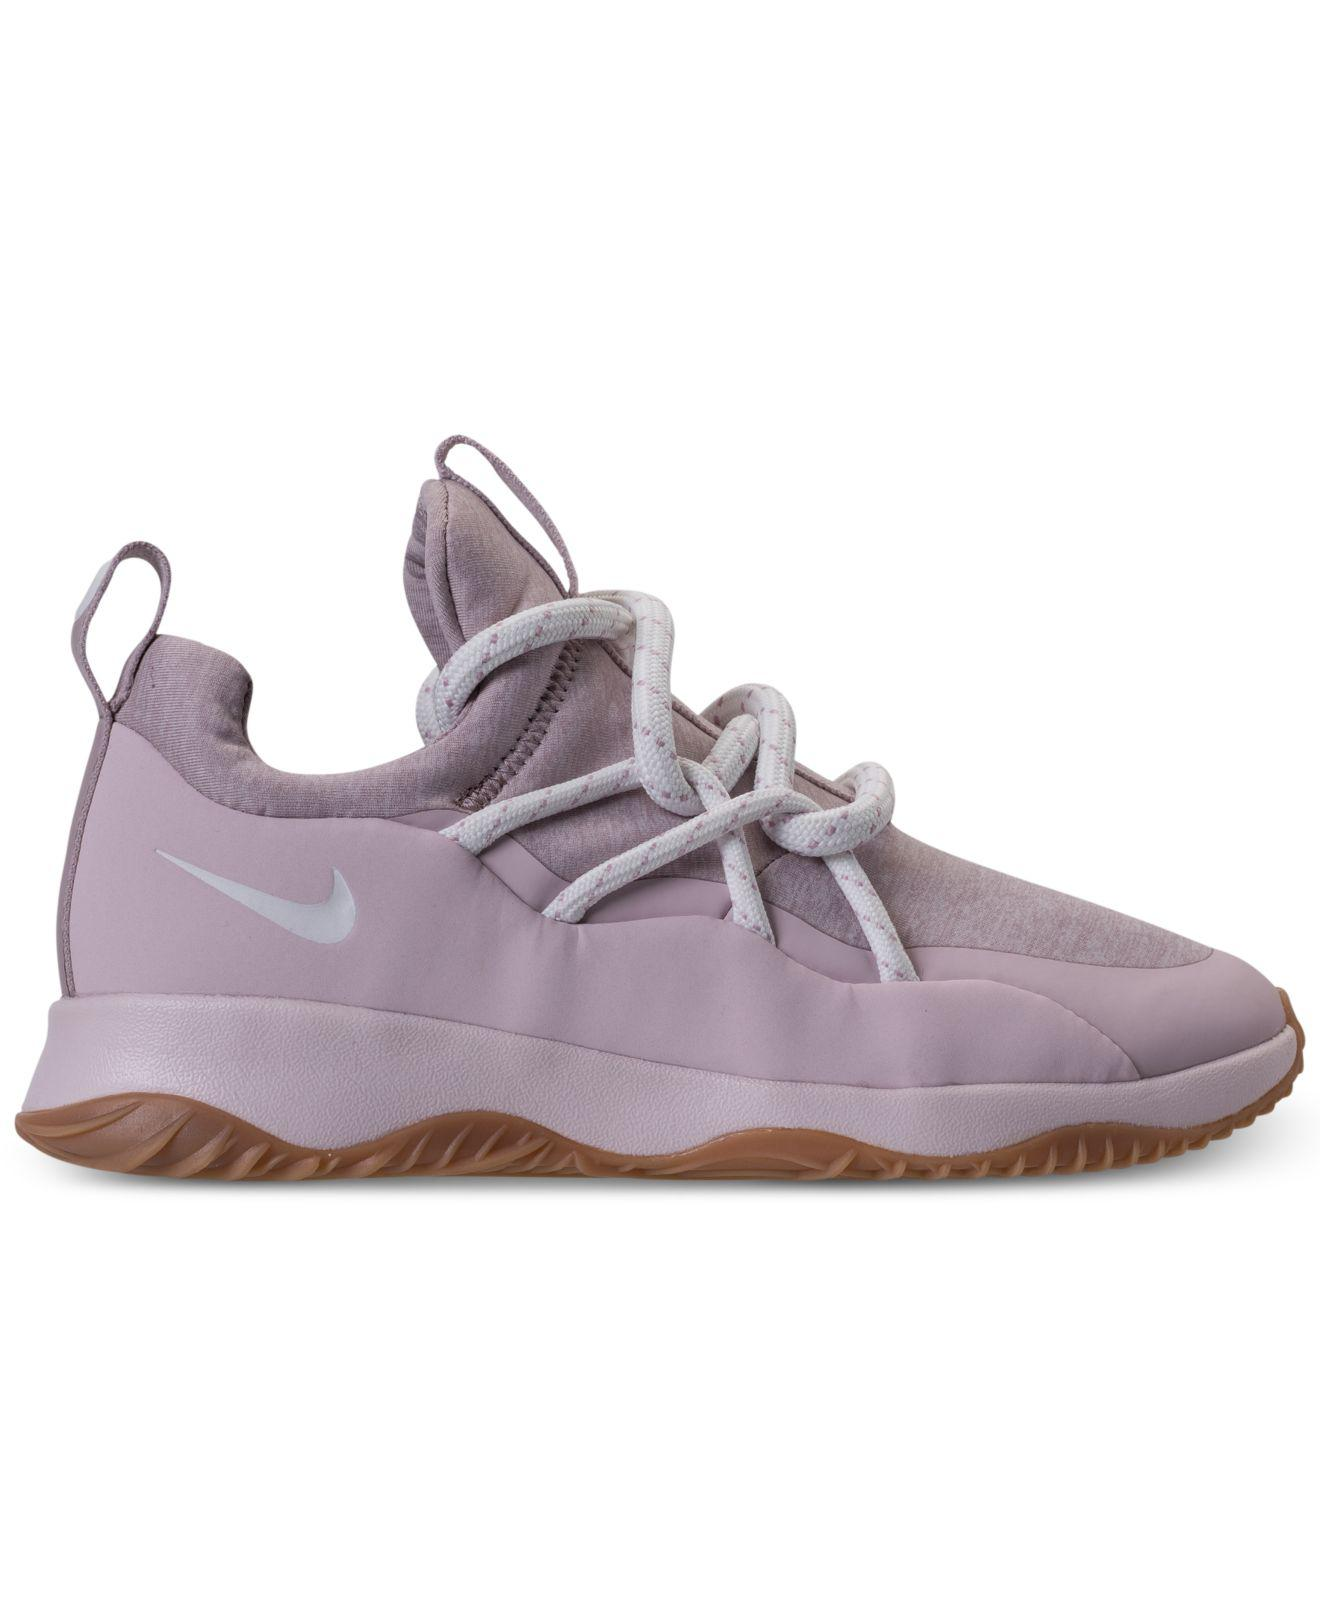 c35d10d042d Lyst - Nike Women s City Loop Casual Sneakers From Finish Line in Purple